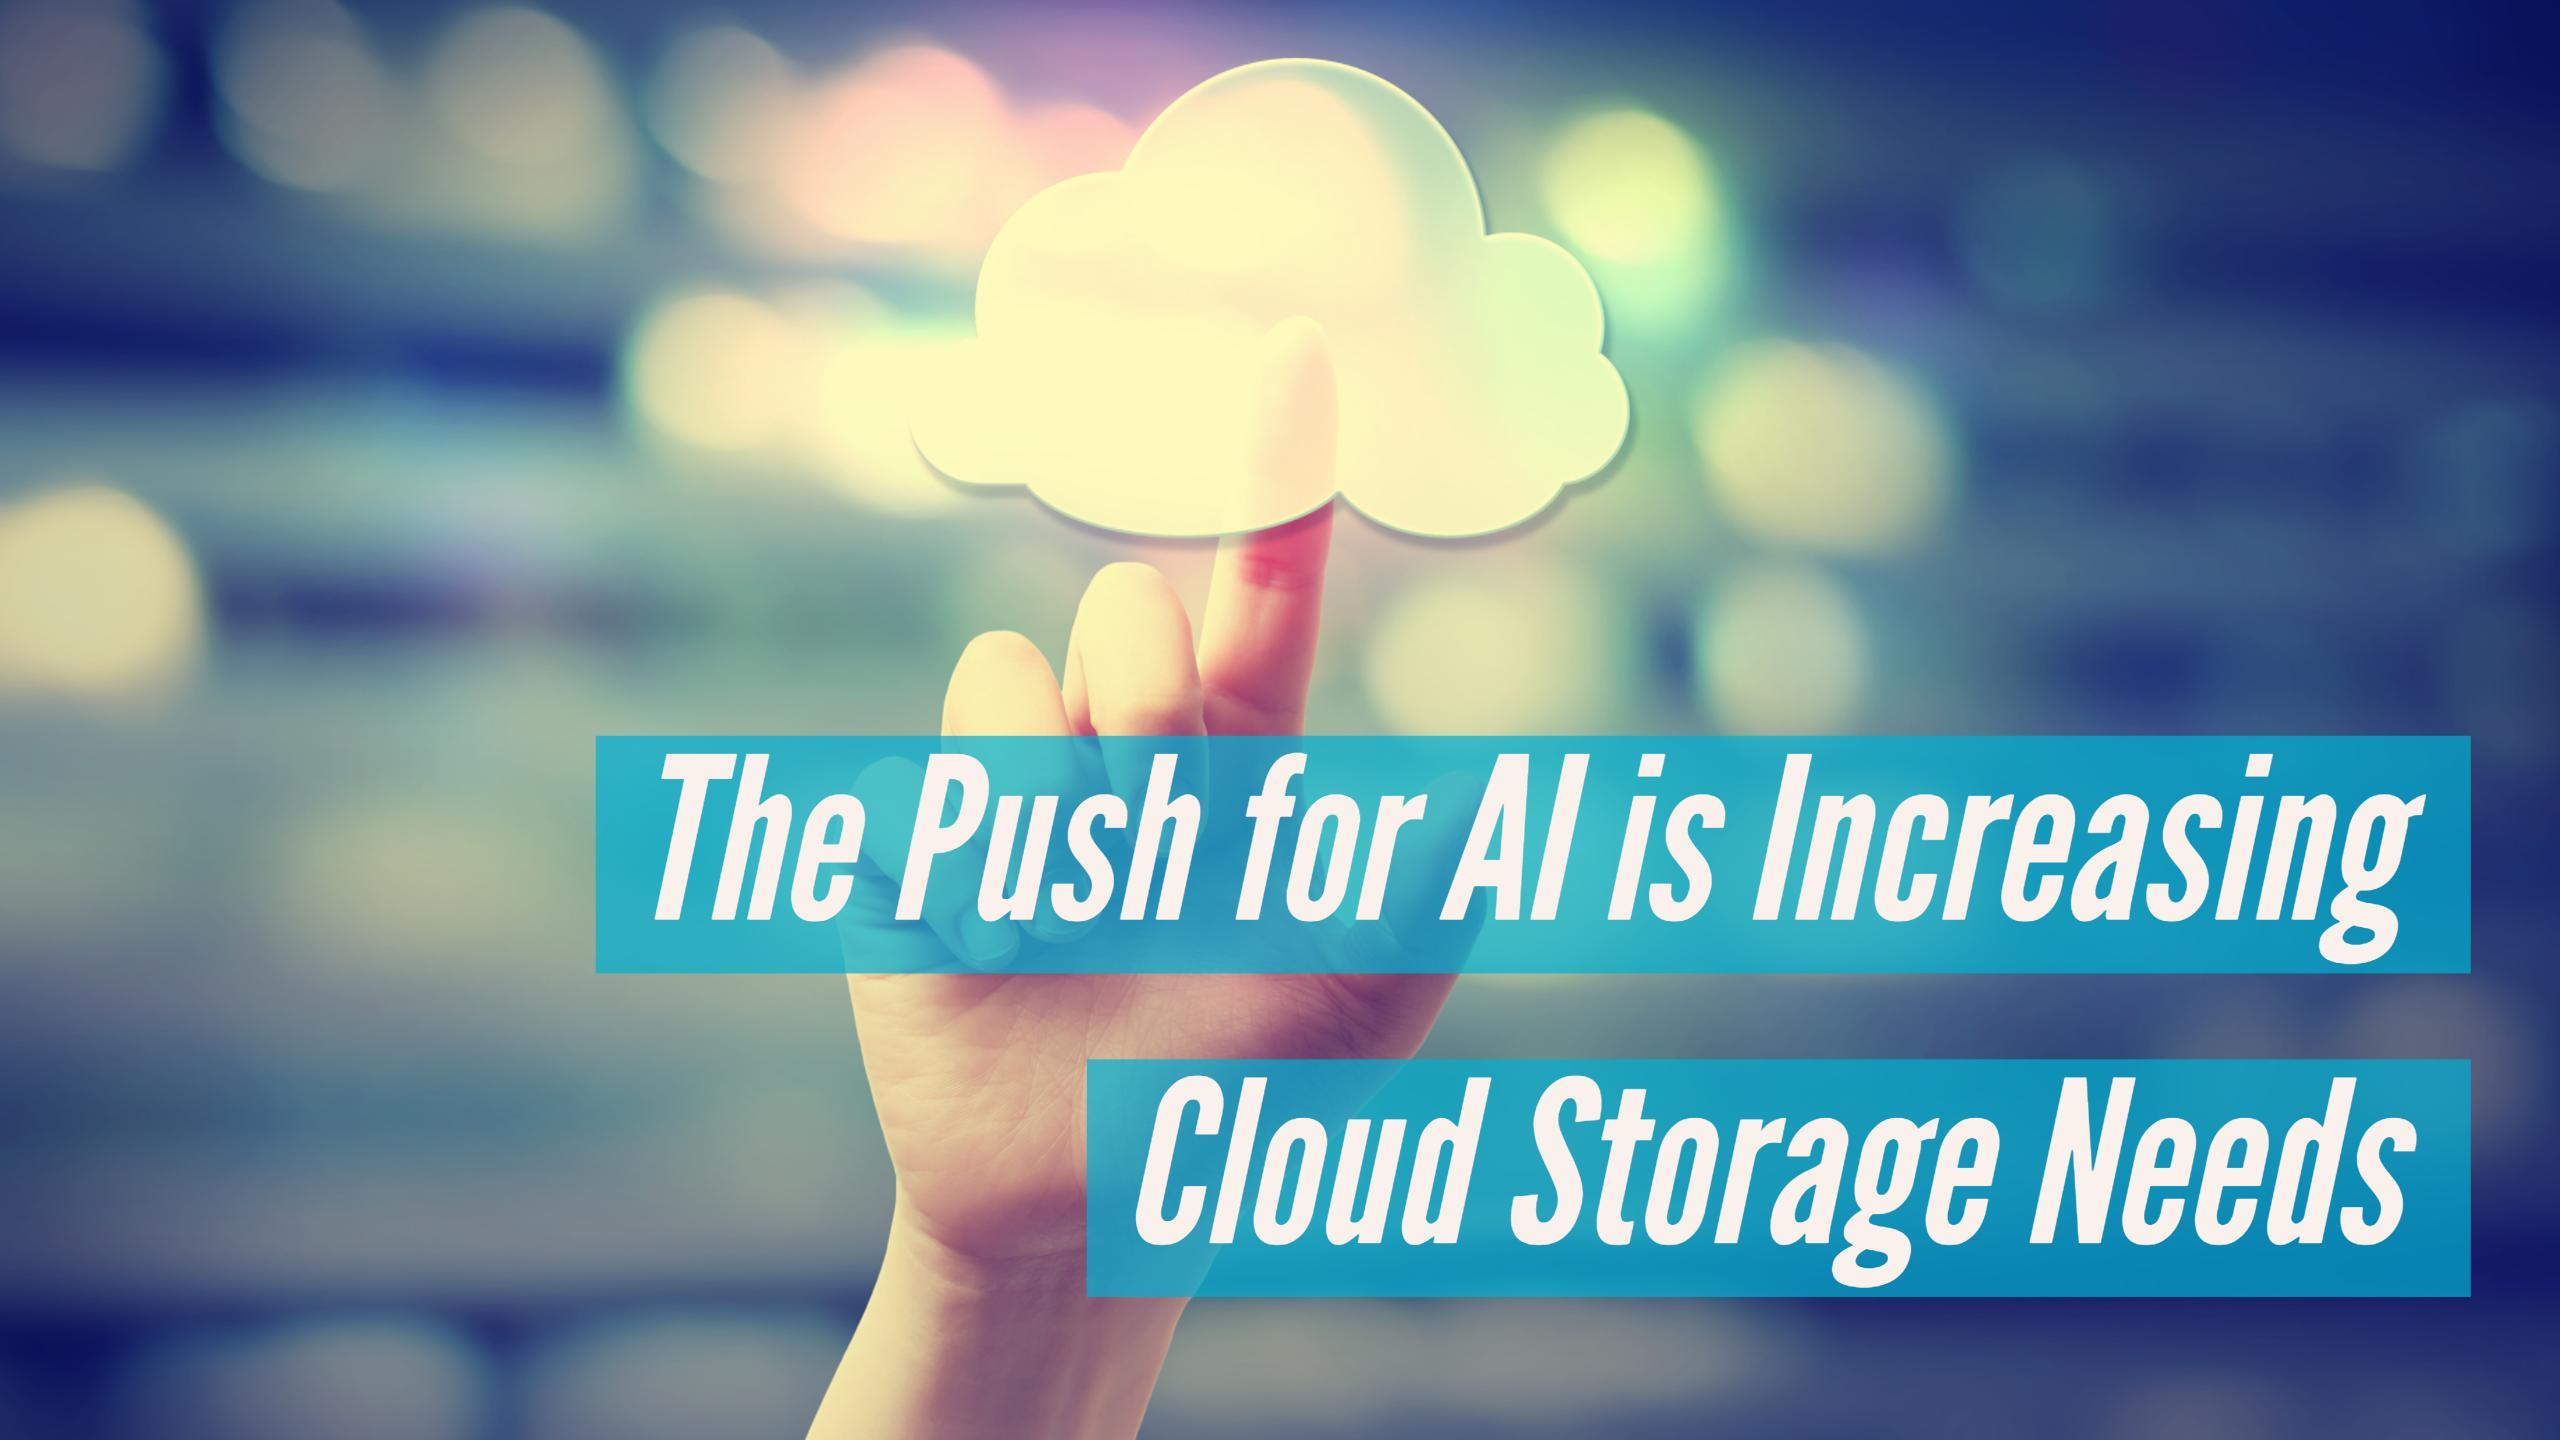 The Push for AI is Increasing Cloud Storage Needs